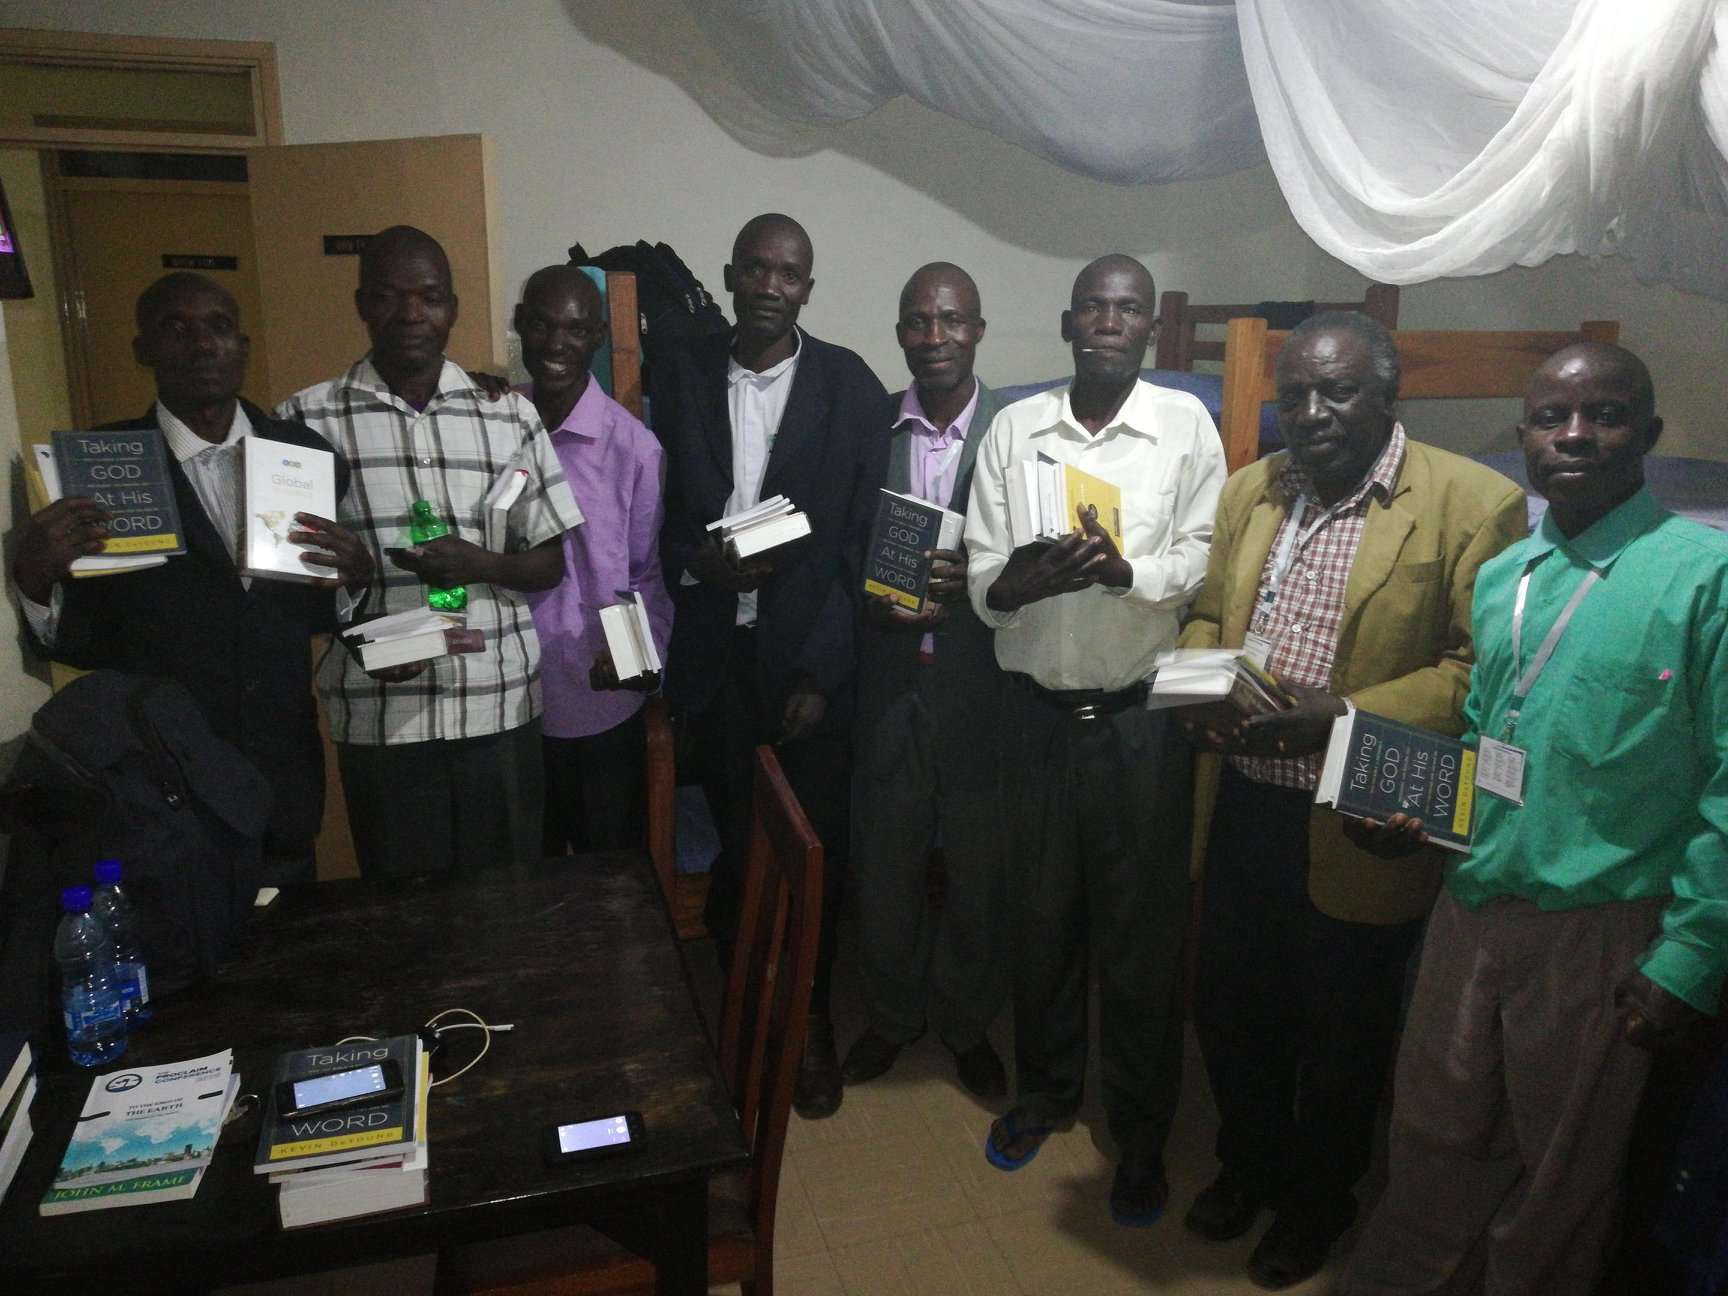 Thanks to generous donors, we were able to supply these pastors with some of their first theological resources. — with  Moses Wamukota ,  Stephen Barasa ,  Samson Muyenga Walala  and  Moses Simiyu .